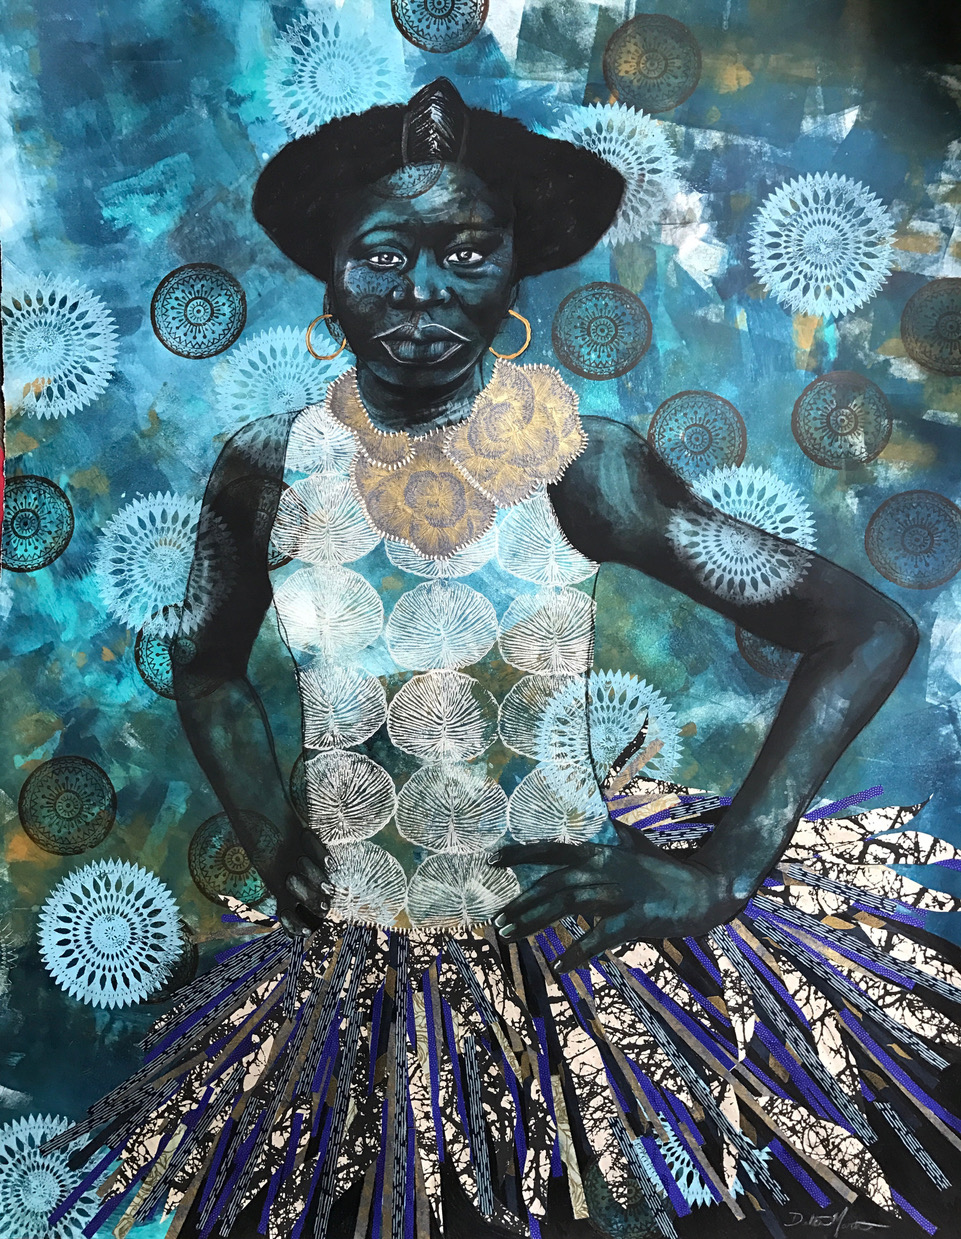 ROUX - Ann Johnson, Rabéa Ballin, Delita Martin and Lovie OliviaTogether, the artists of ROUX examine cultural and societal issues of genealogy, feminism, identity, & other topics affecting women of the African Diaspora.Image: If Spirits Danced,by Delita Martin